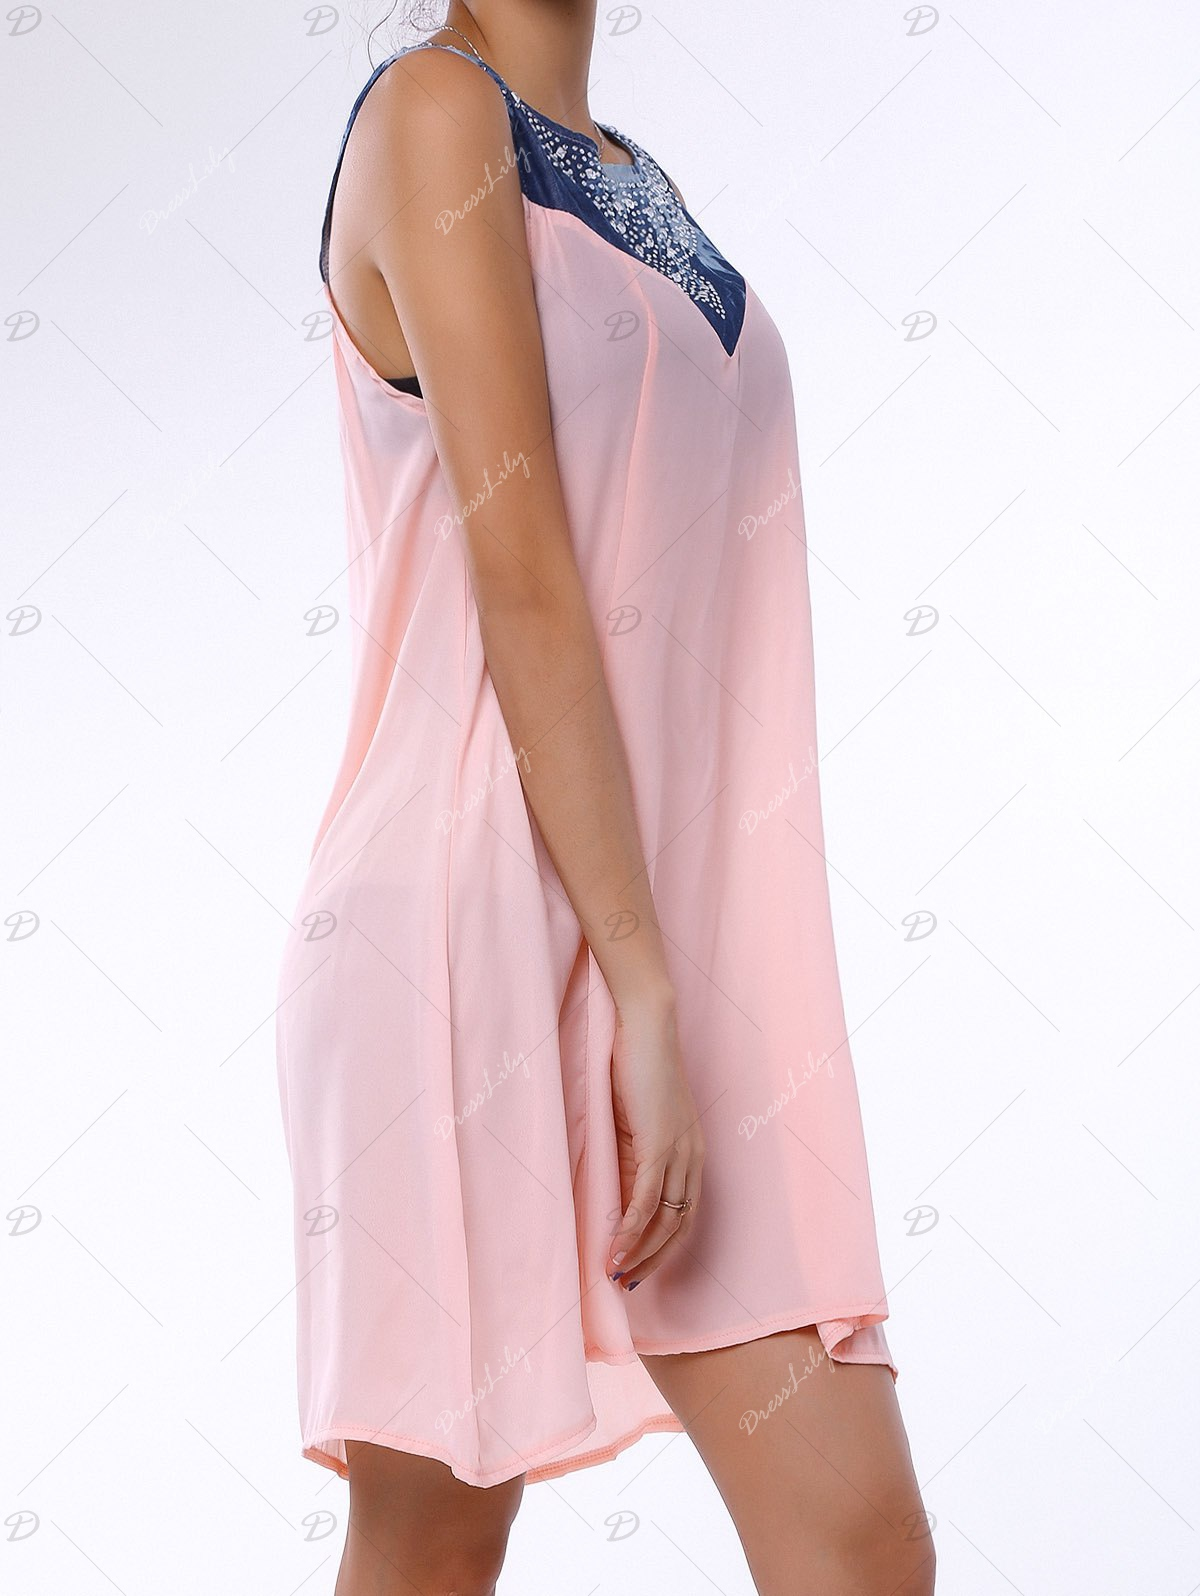 Fashionable Sleeveless Rhinestone Embellished Denim Splicing Dress For Women - LIGHT PINK L